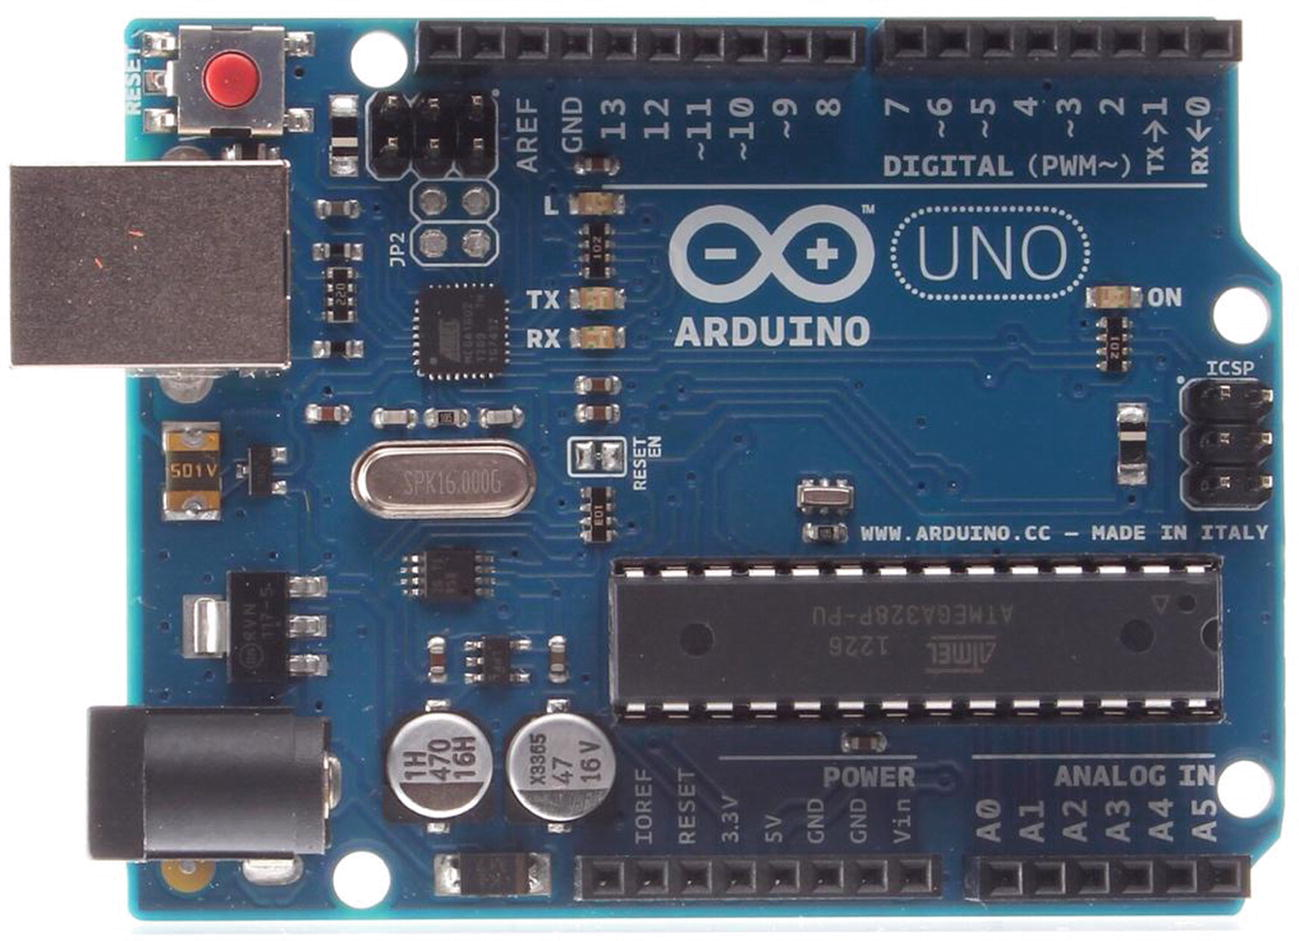 The Raspberry Pi And Arduino Springerlink Isp In System Programming Standalone Circuits Open Image New Window